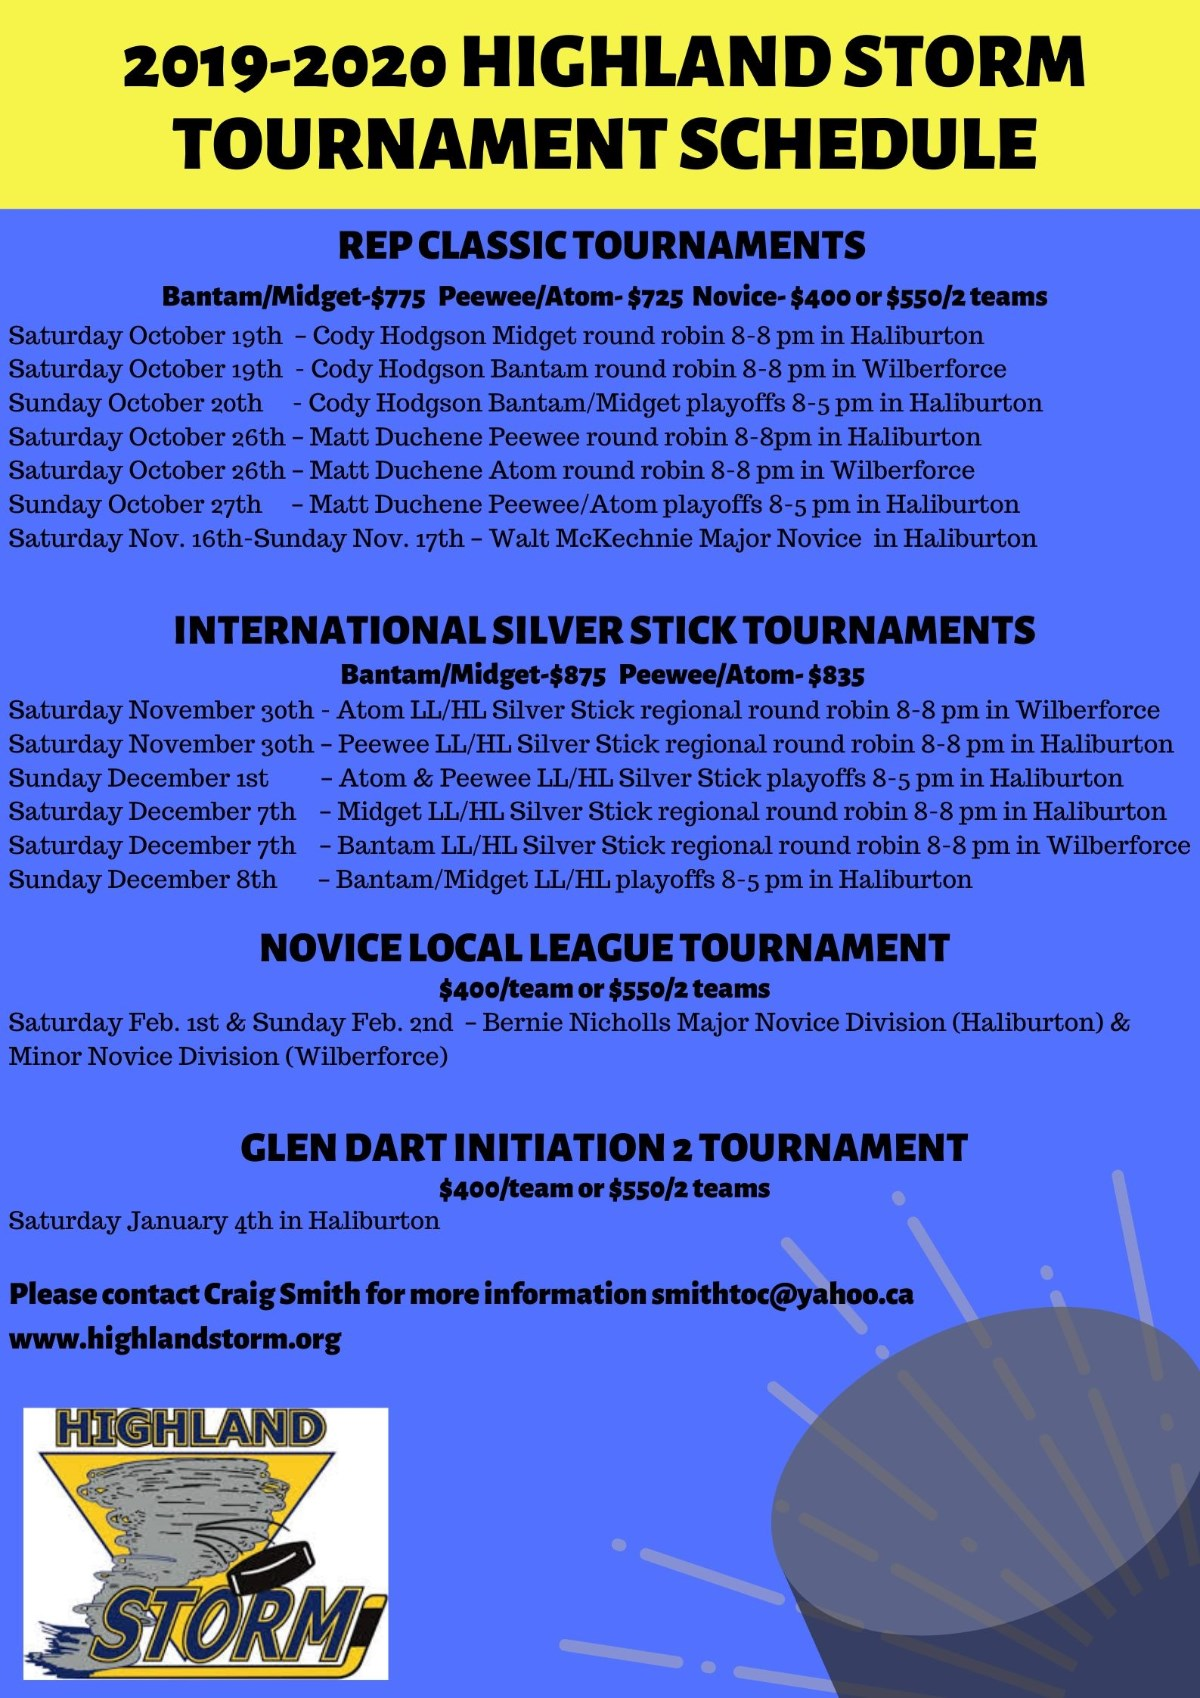 Updated_tournament_schedule18-11-2019.jpg